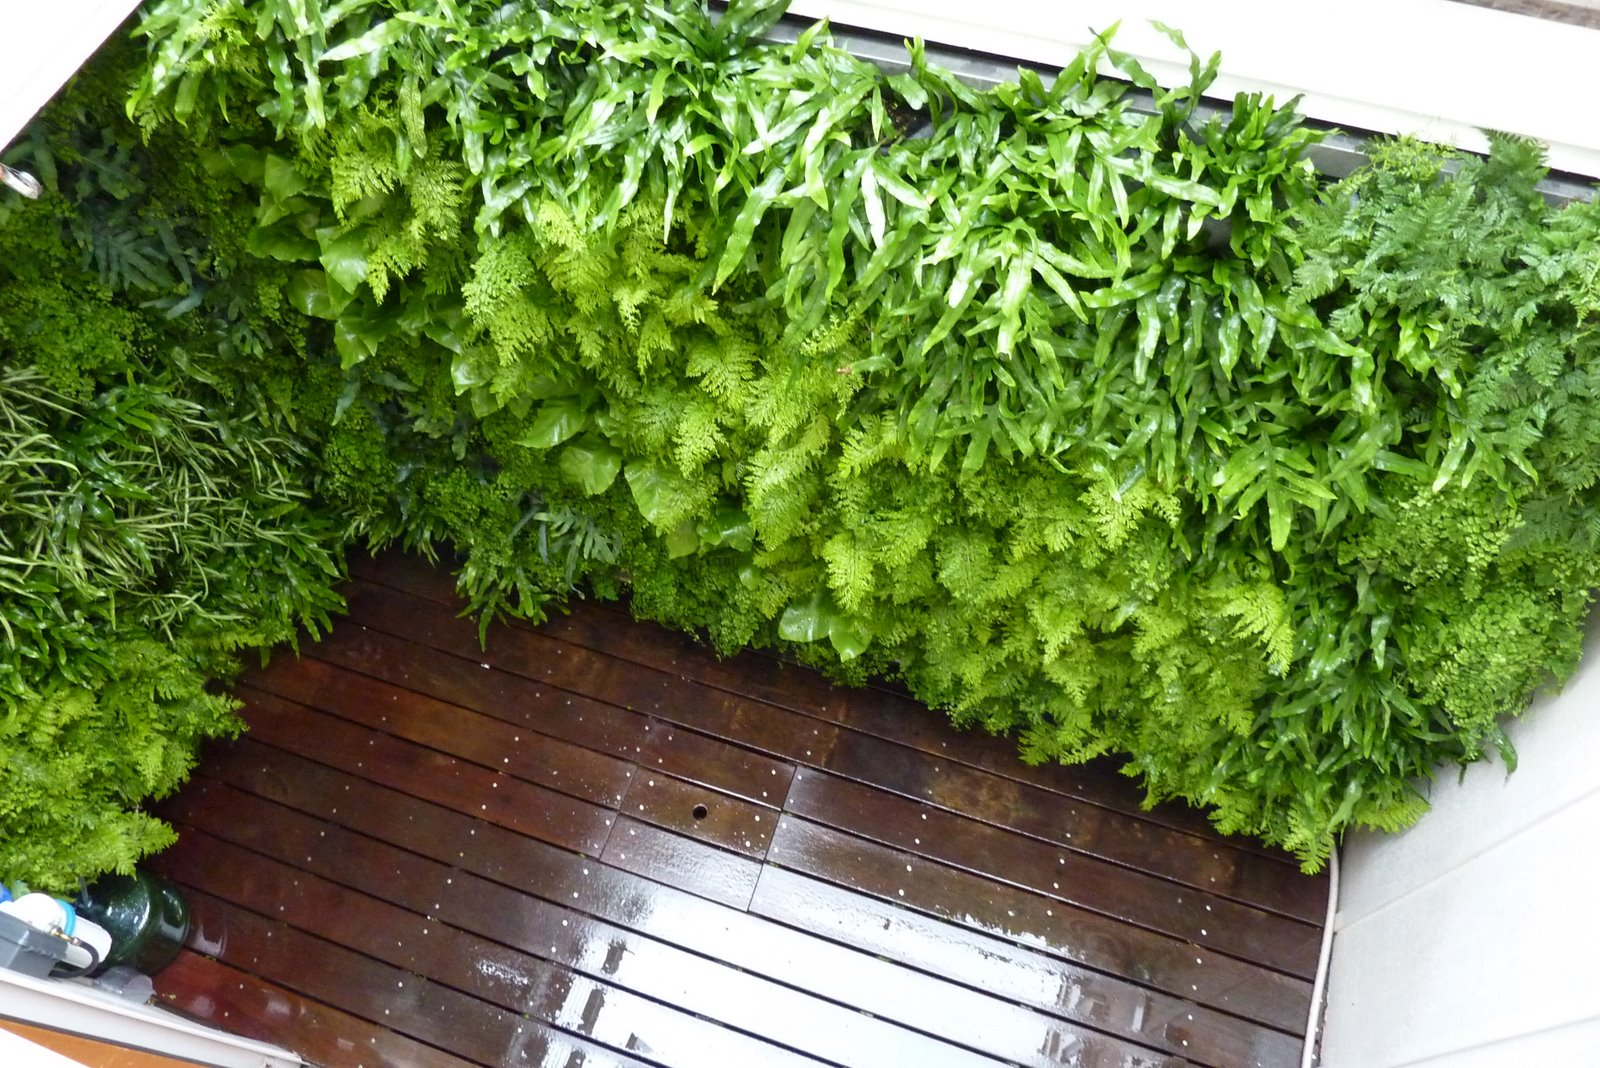 Plants on walls vertical garden systems december 2011 for Wall garden system